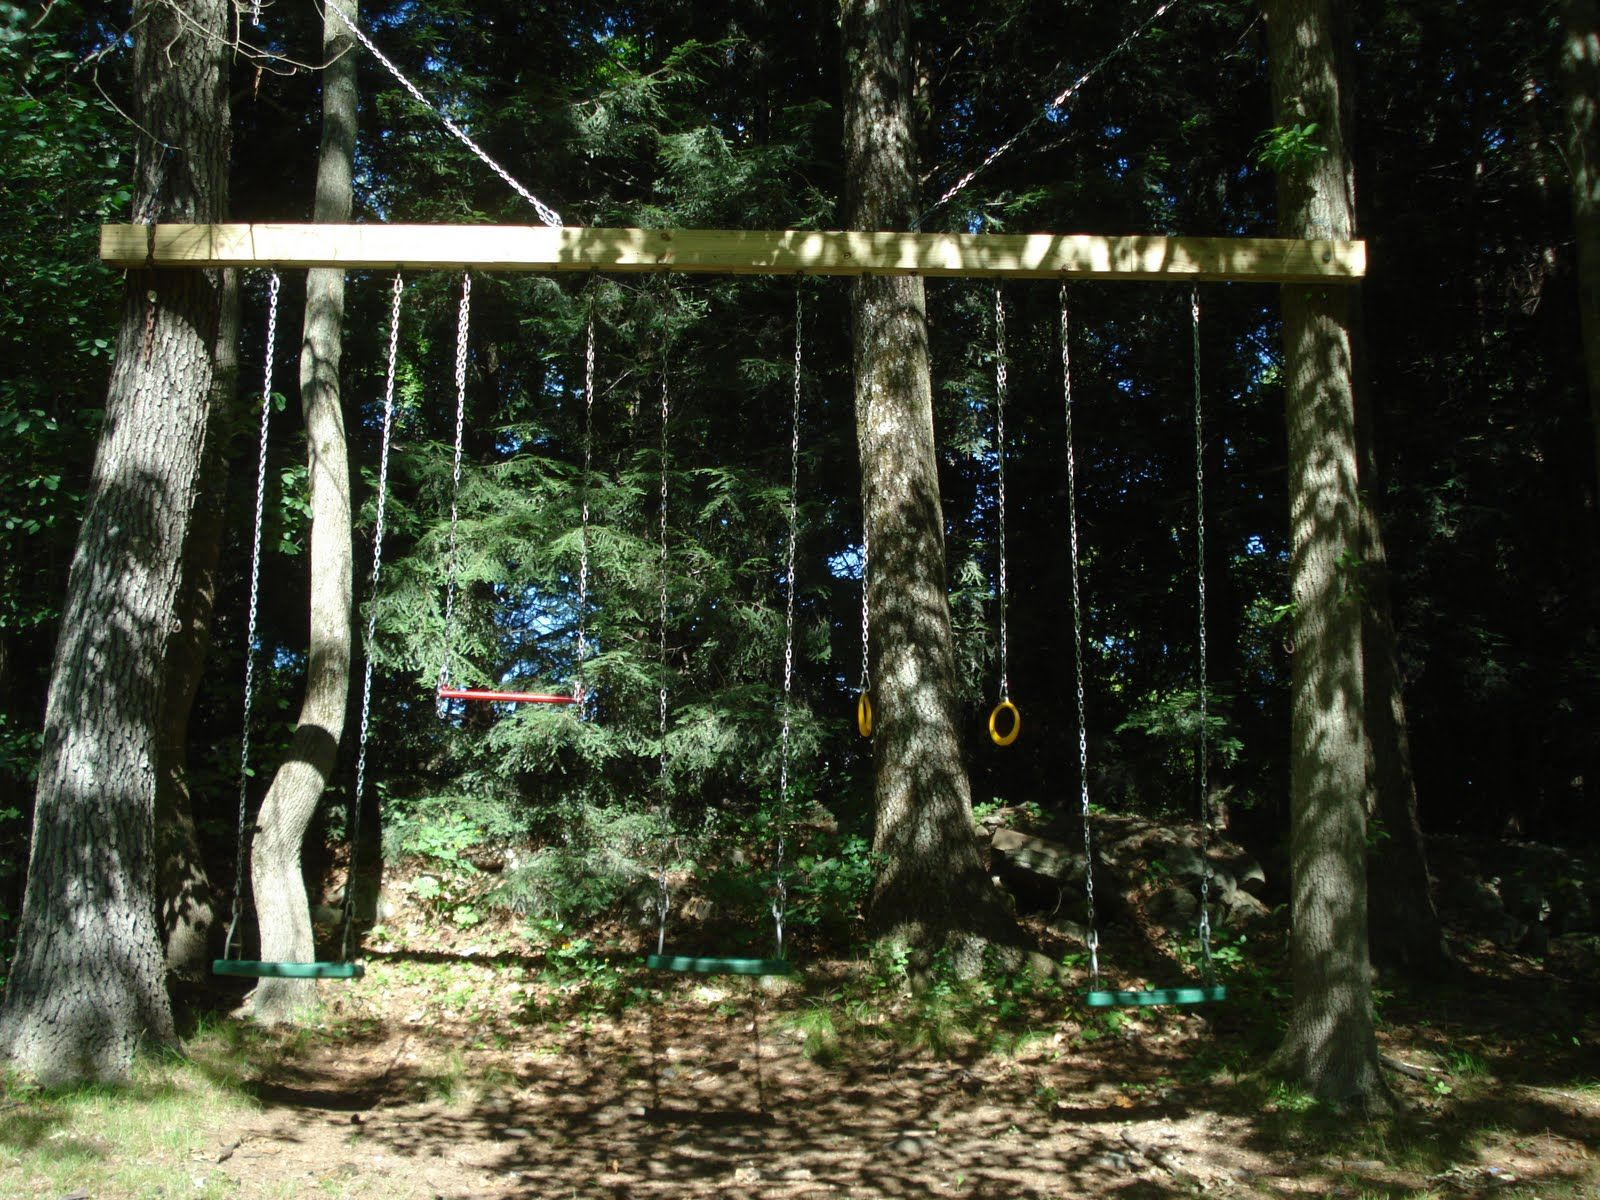 swings to hang from trees